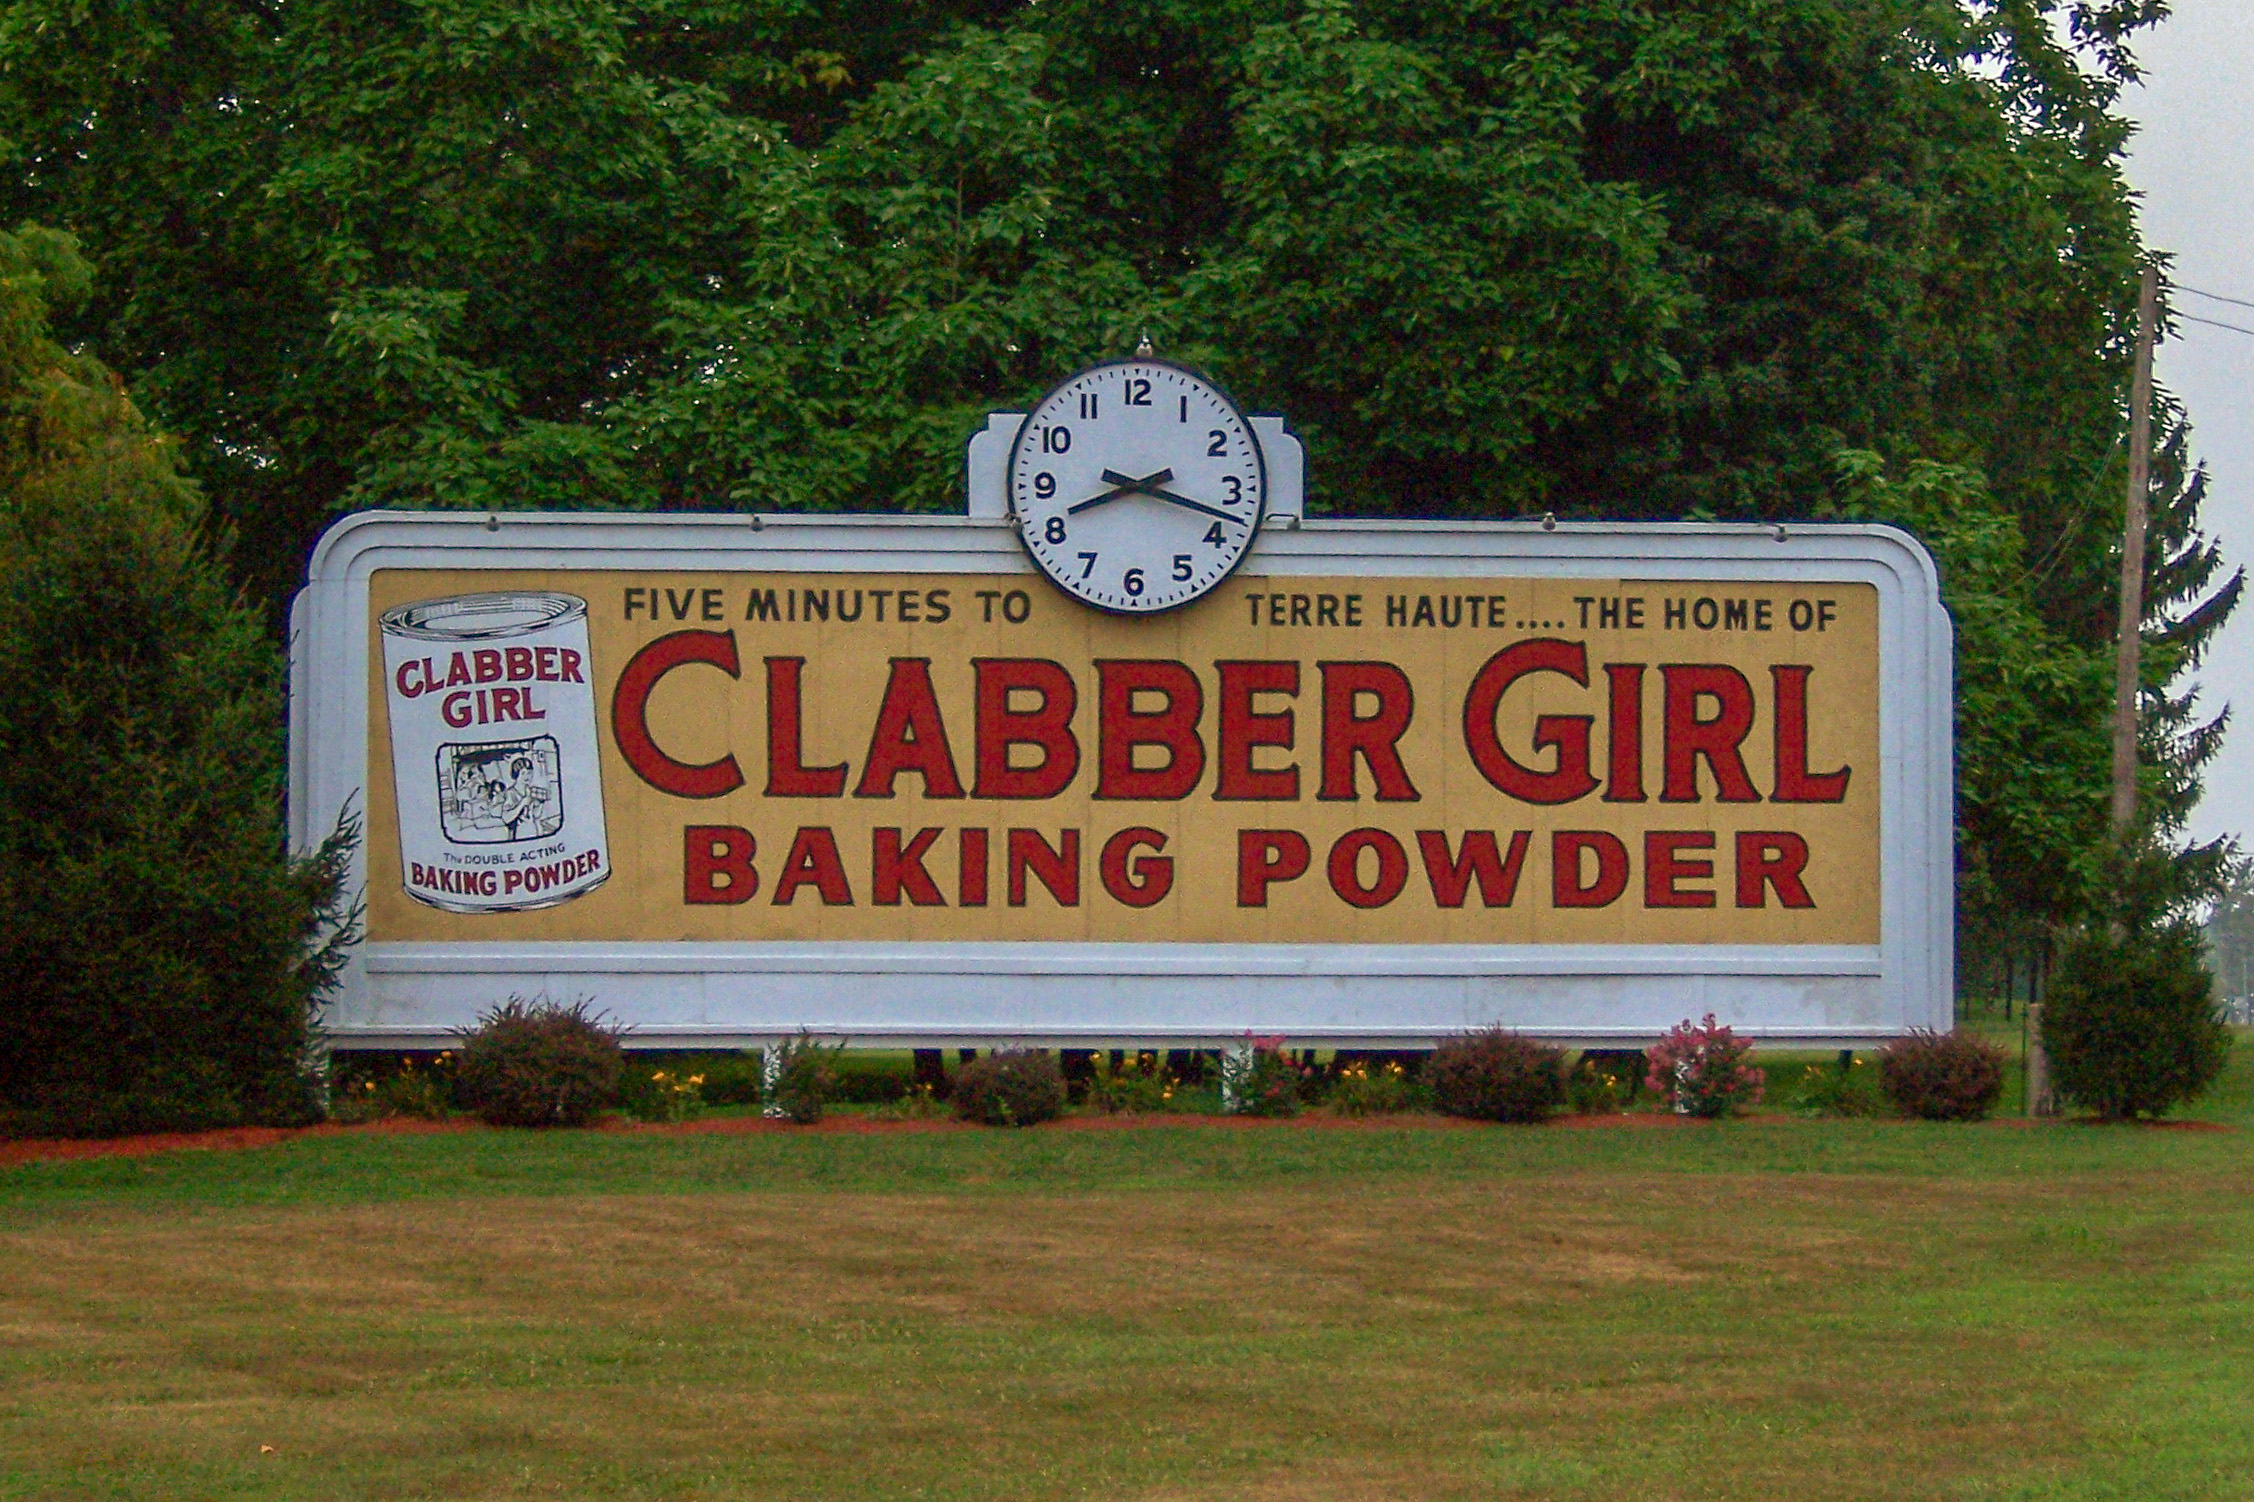 Clabber Girl Baking Powder - Terre Haute, Indiana U.S.A. - August 19, 2007